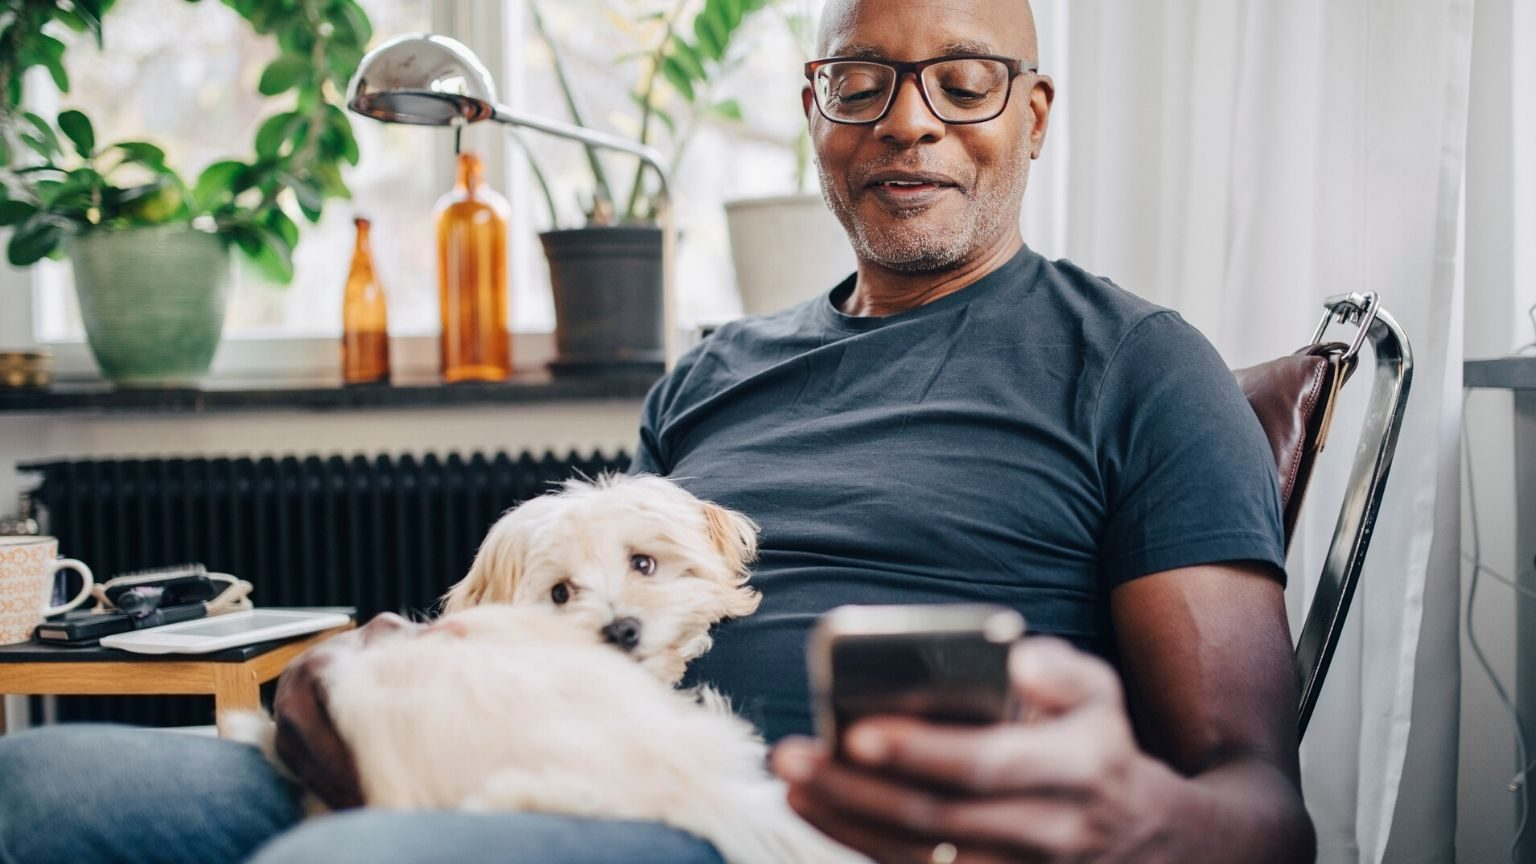 Man with his dog and smartphone in his hand